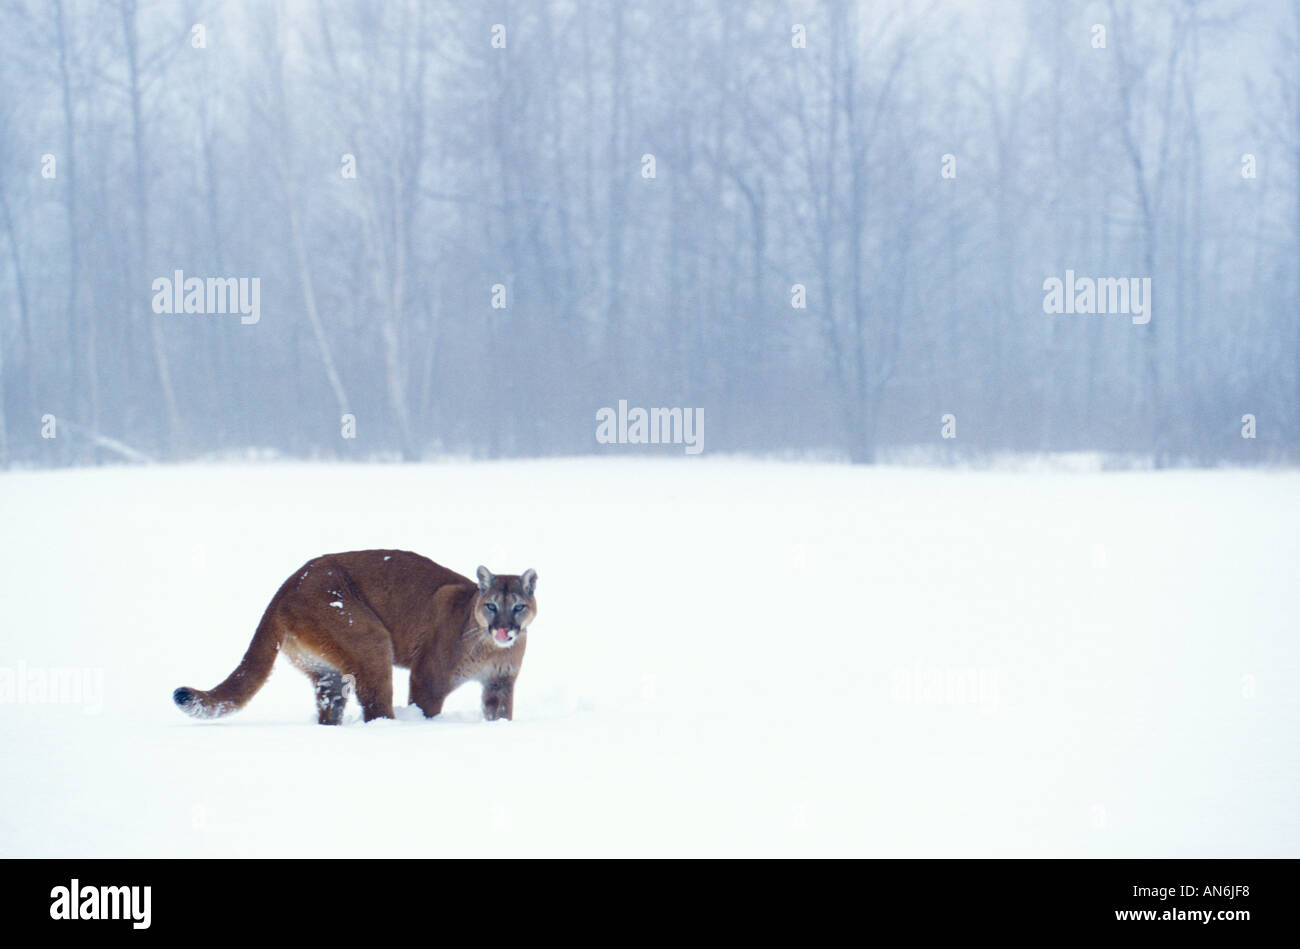 Mountain Lion Puma Felis concolor cougar Minnesota USA Imagen De Stock